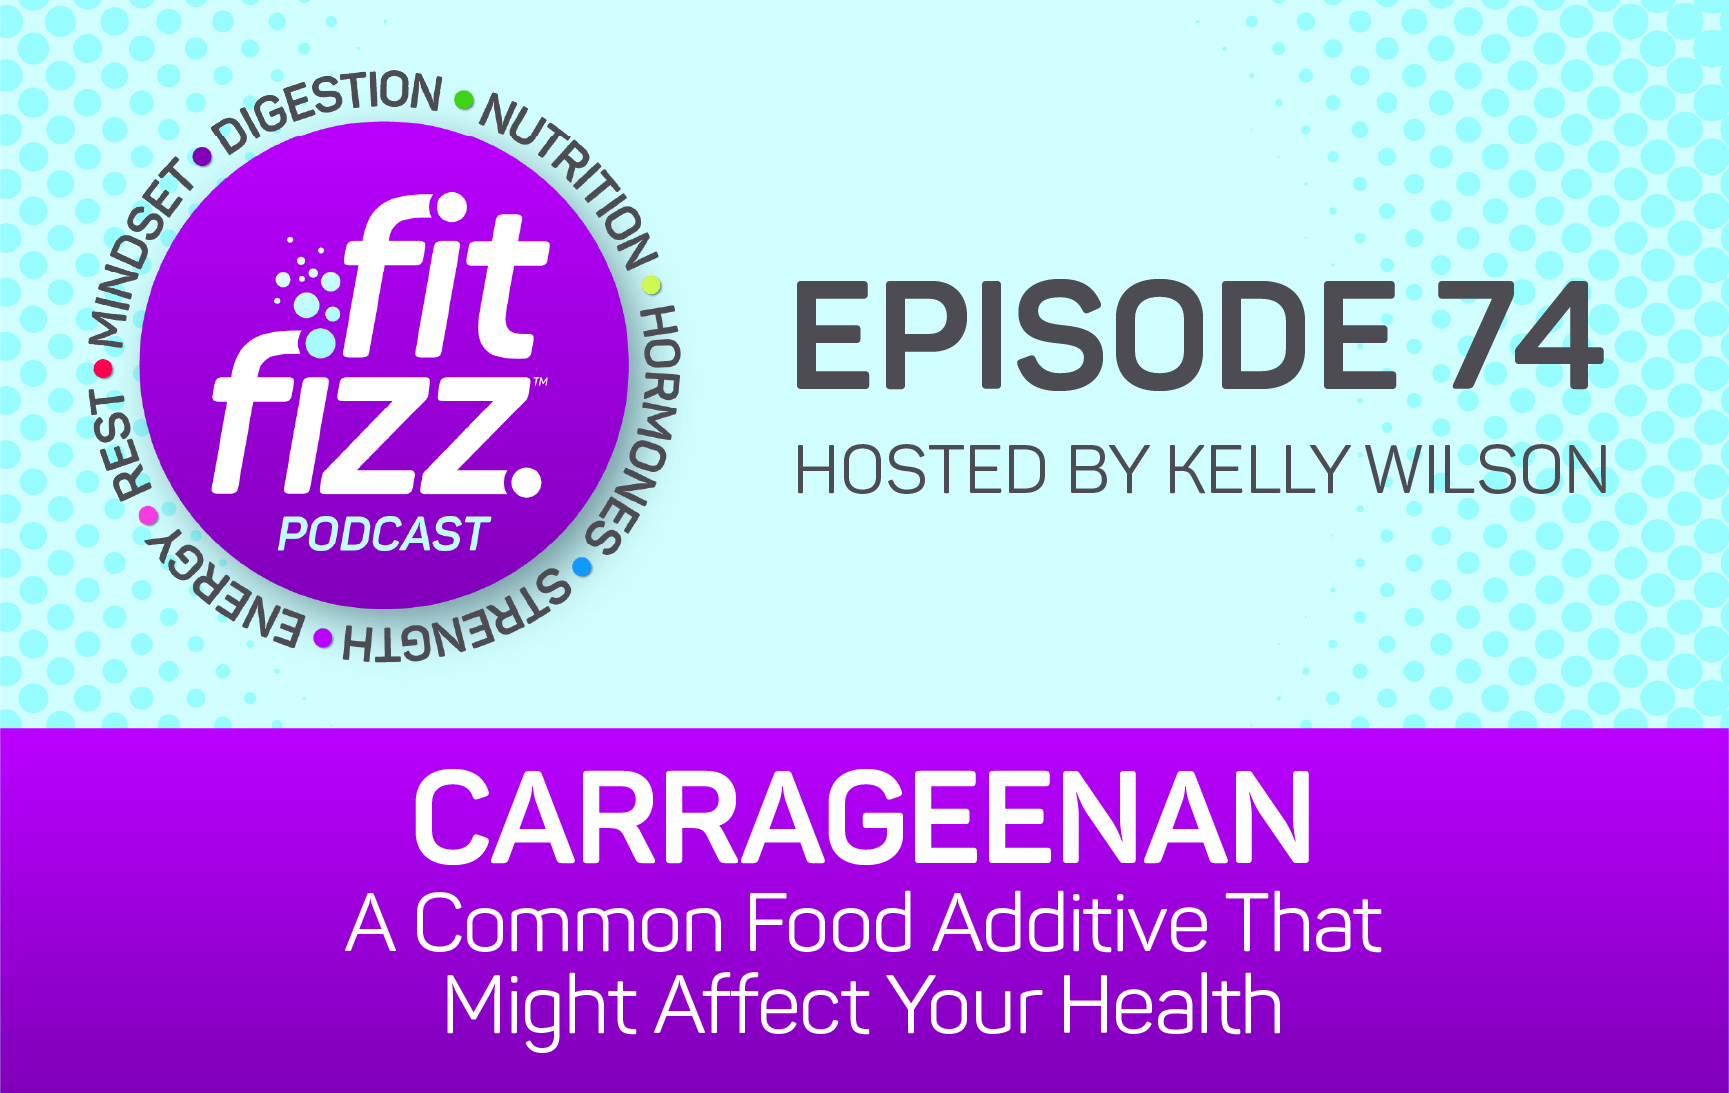 Ep. 74: Carrageenan: A Common Food Additive That Might Affect Your Health